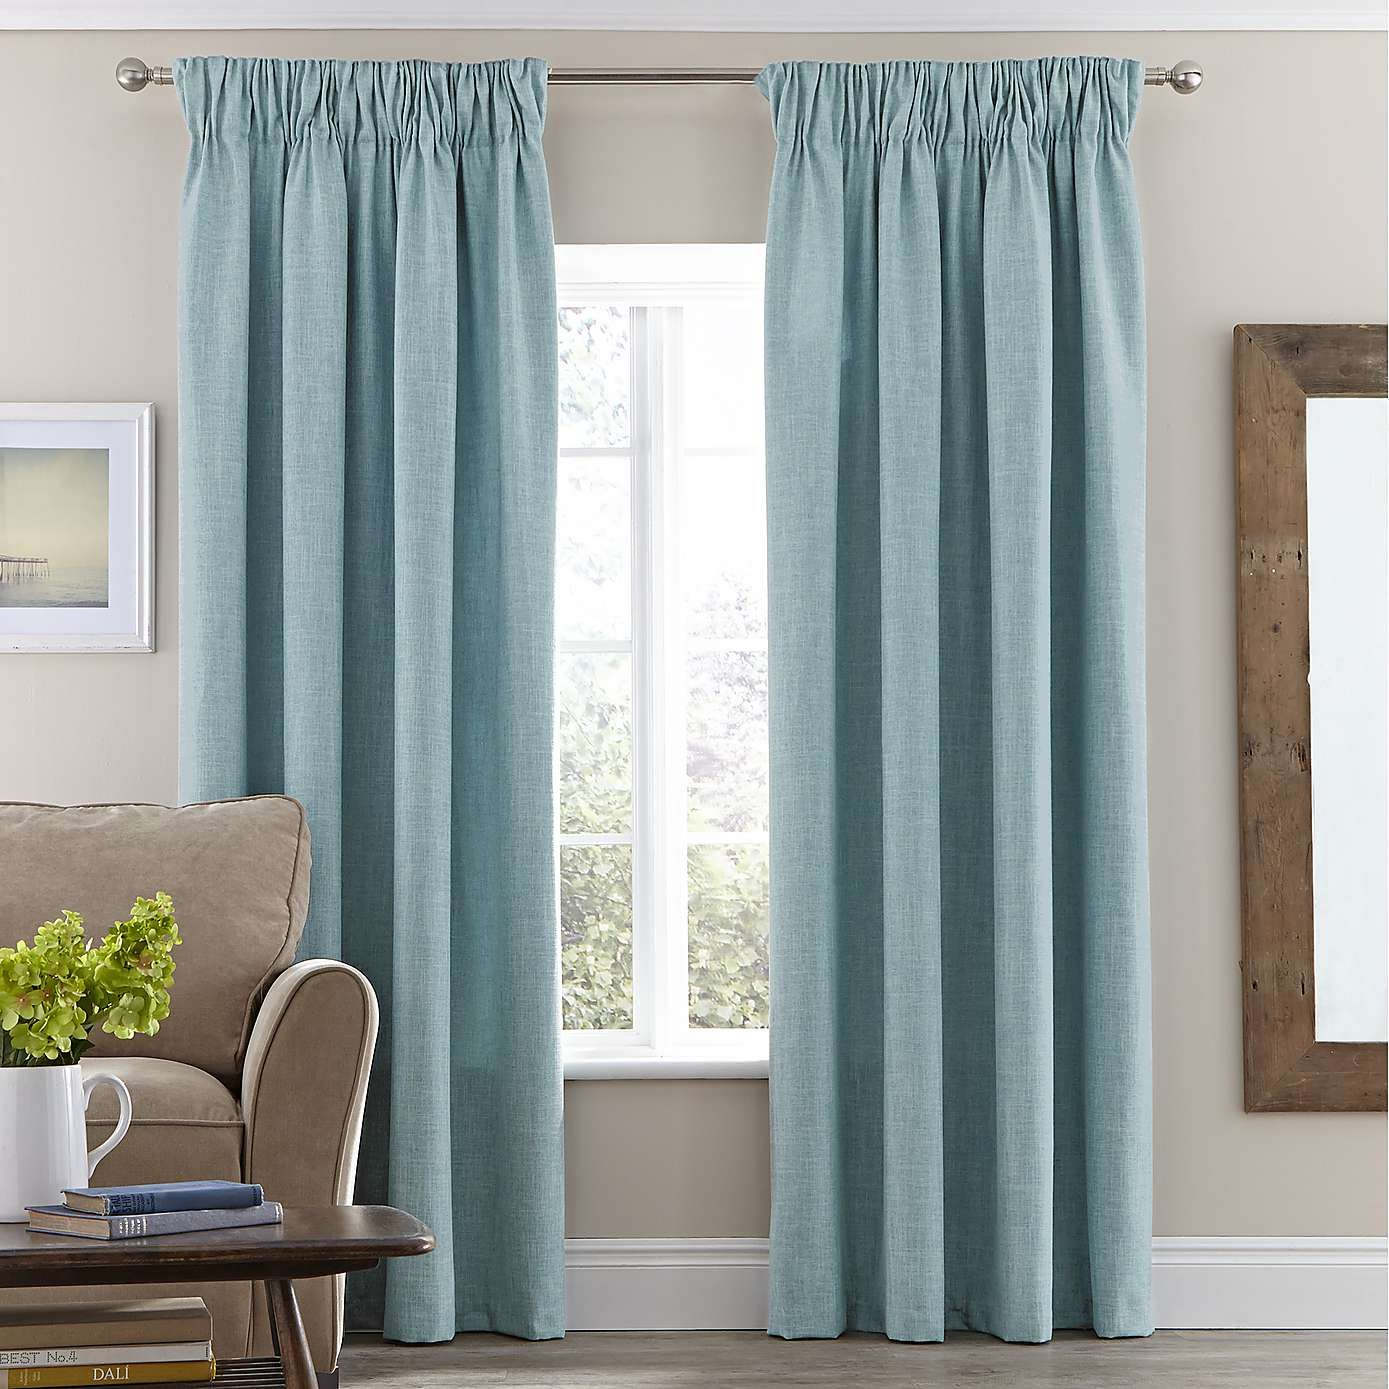 NOT like this Duck Egg Vermont Lined Pencil Pleat Curtain Dunelm Curtain heads Curtains